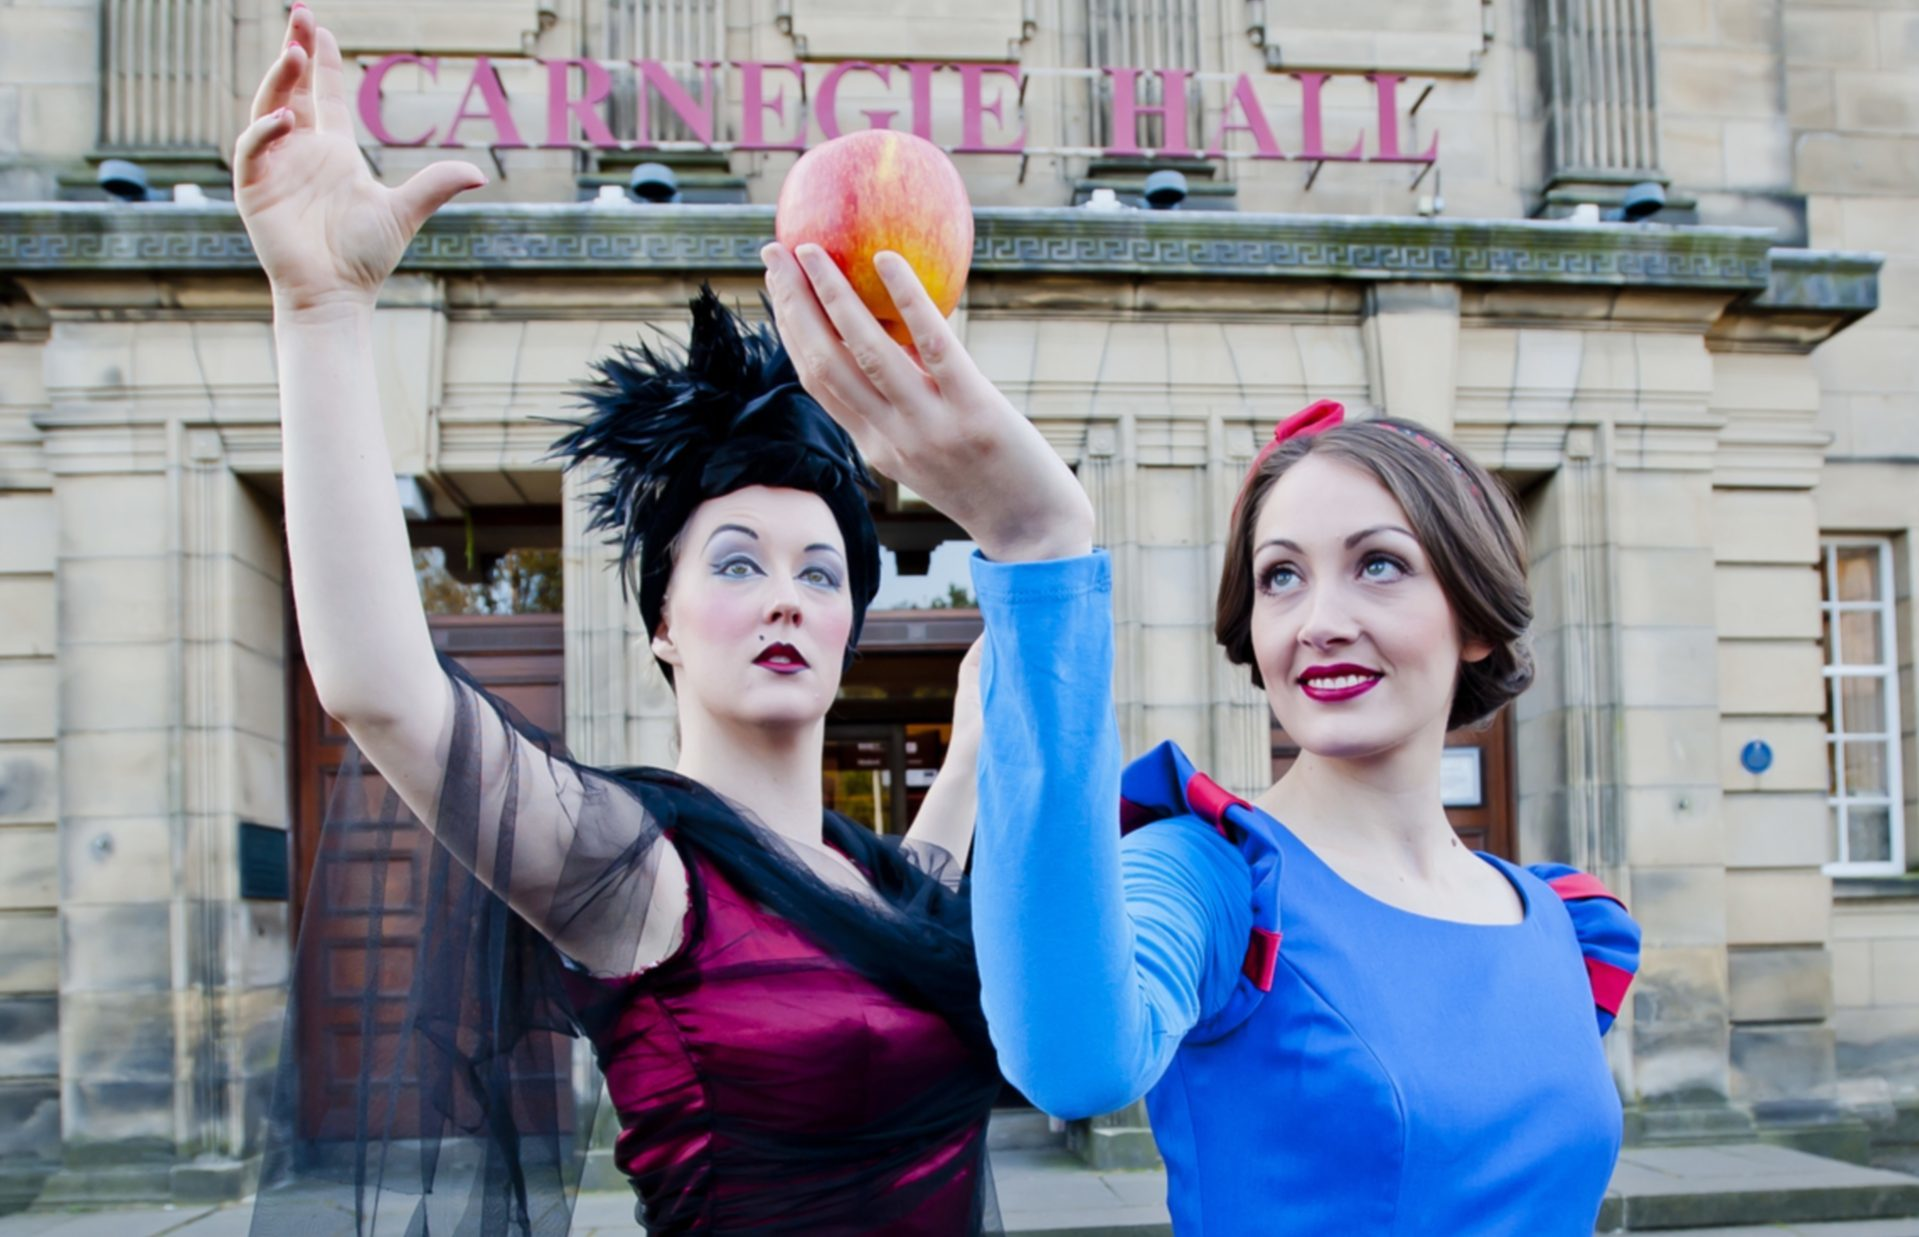 Carnegie Hall in Dunfermline forms part of the discussions - which have so far failed to bear fruit.